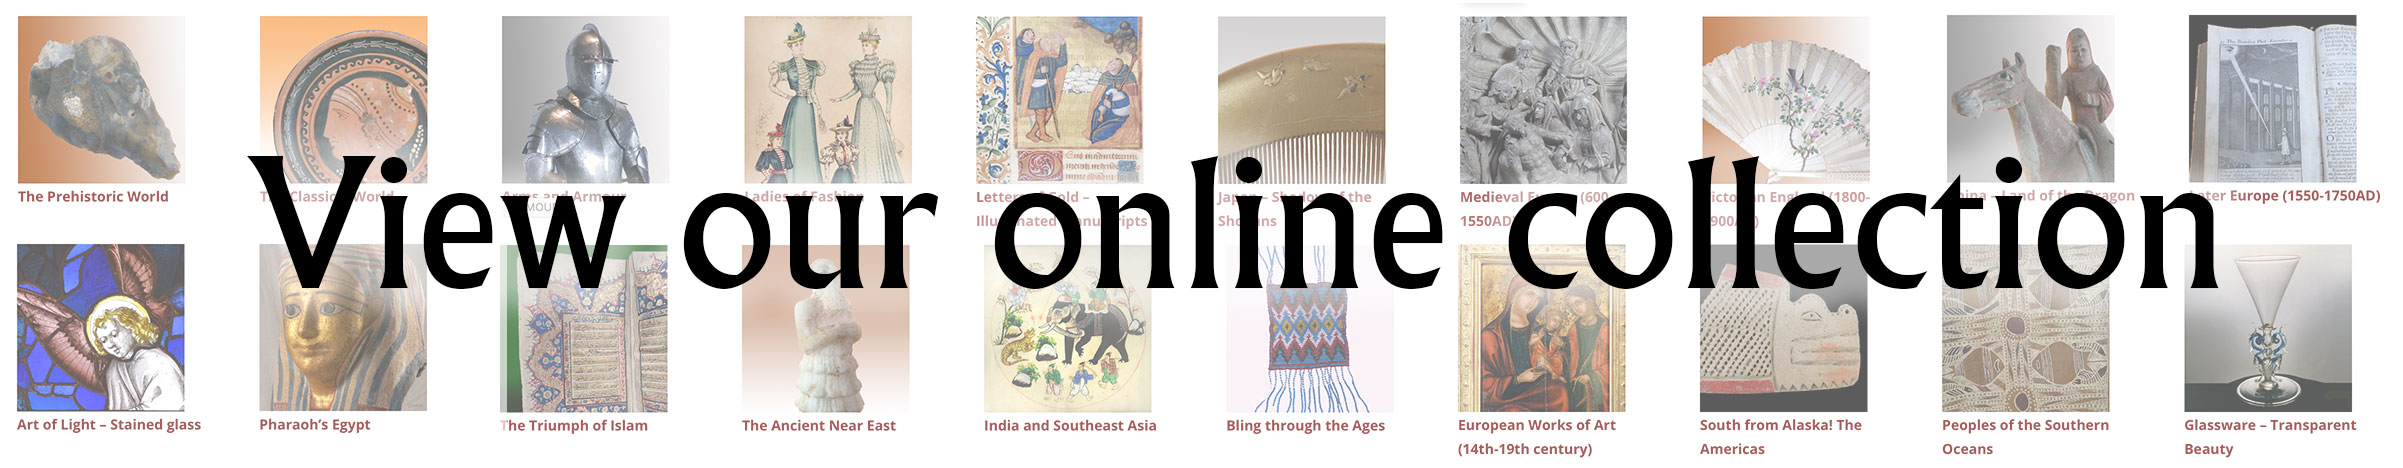 View Our Online Collection